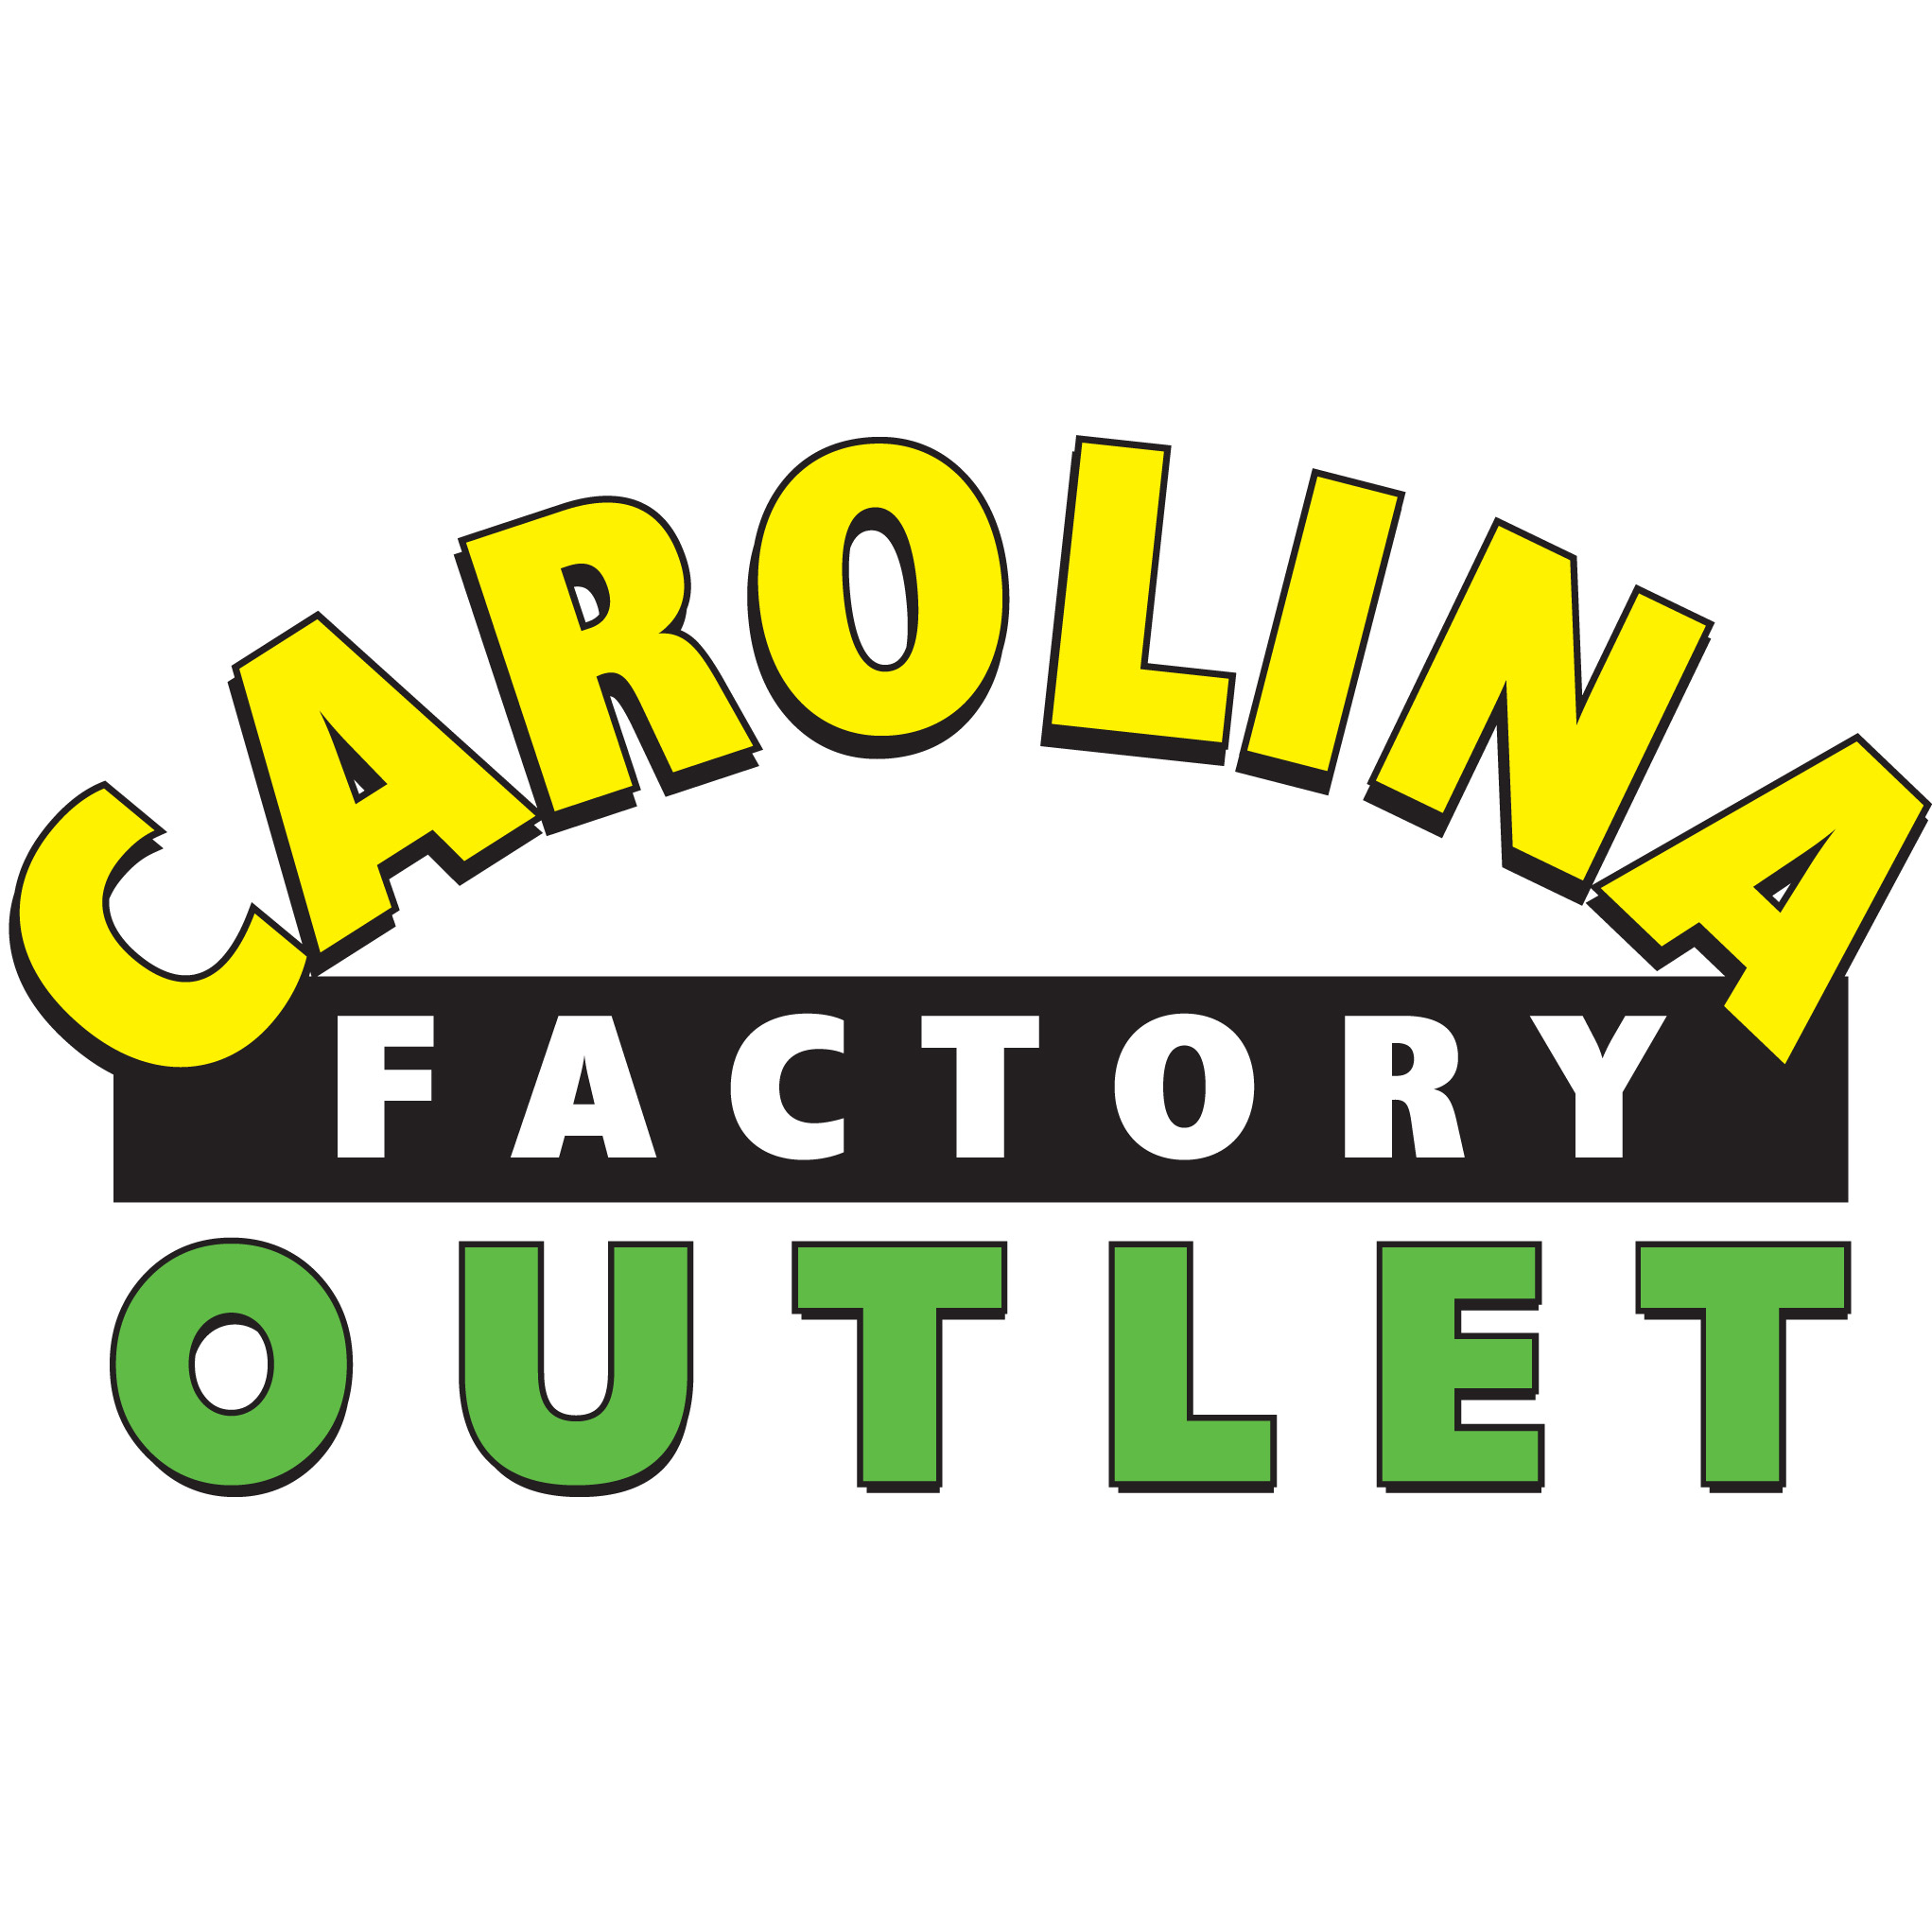 Hudson discount furniture carolina factory outlet Home furnishings factory outlet